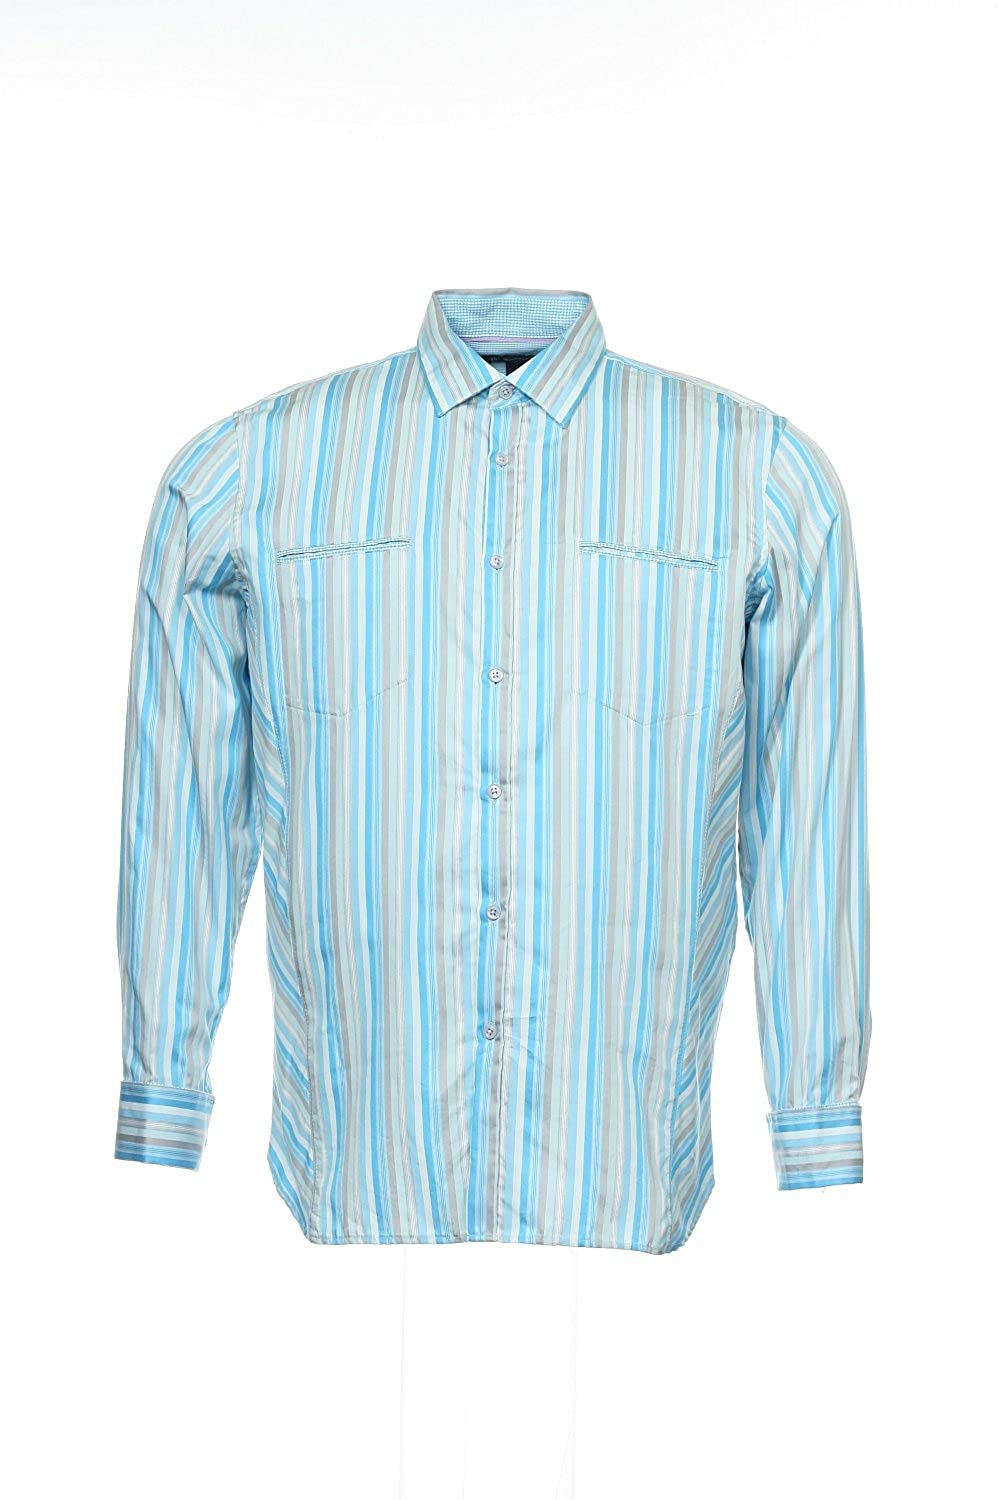 INC International Concepts Mens Light Blue Vertical Striped Button Down Shirt